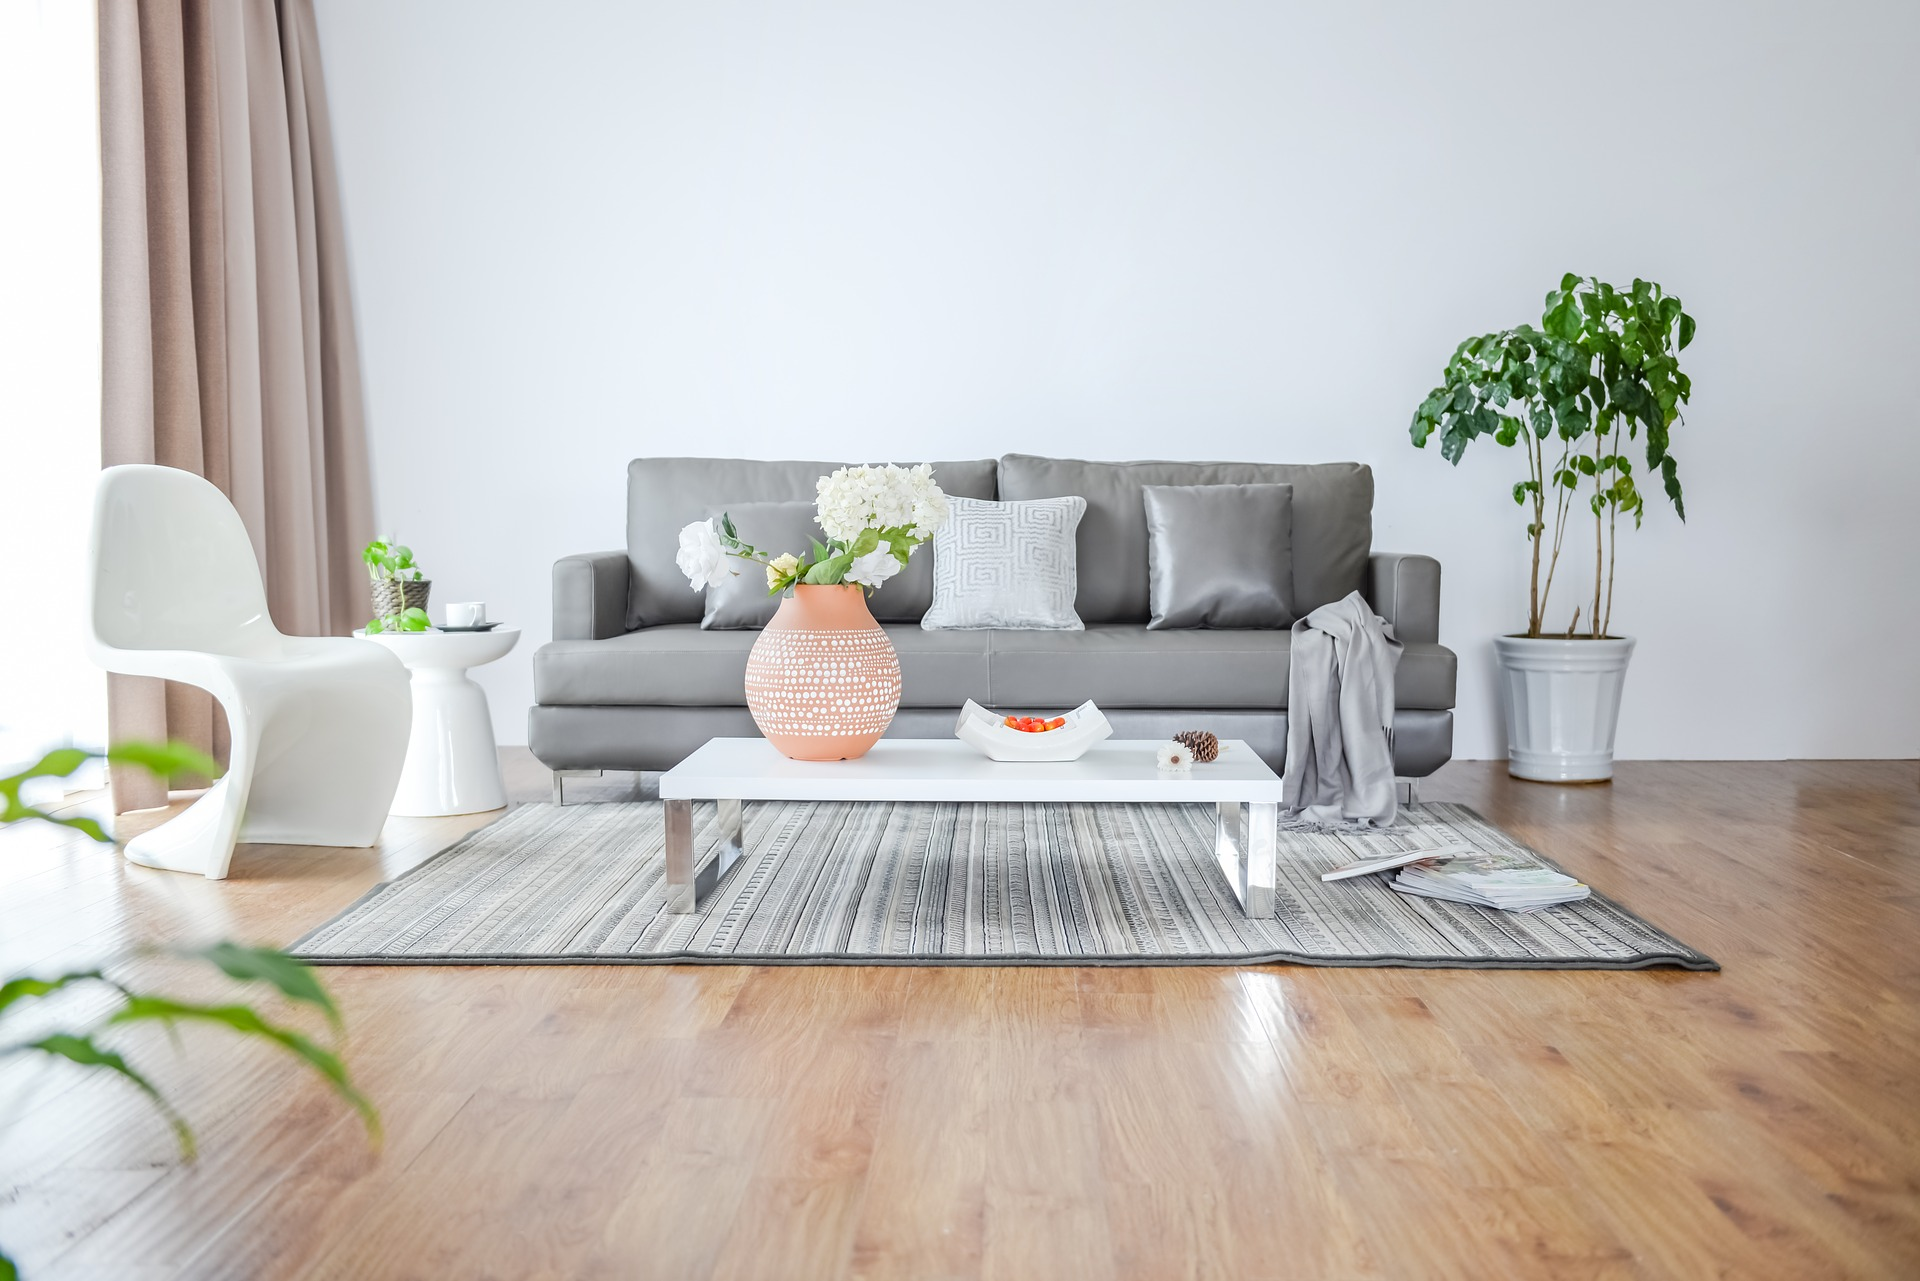 clean home with couch, plants and floor